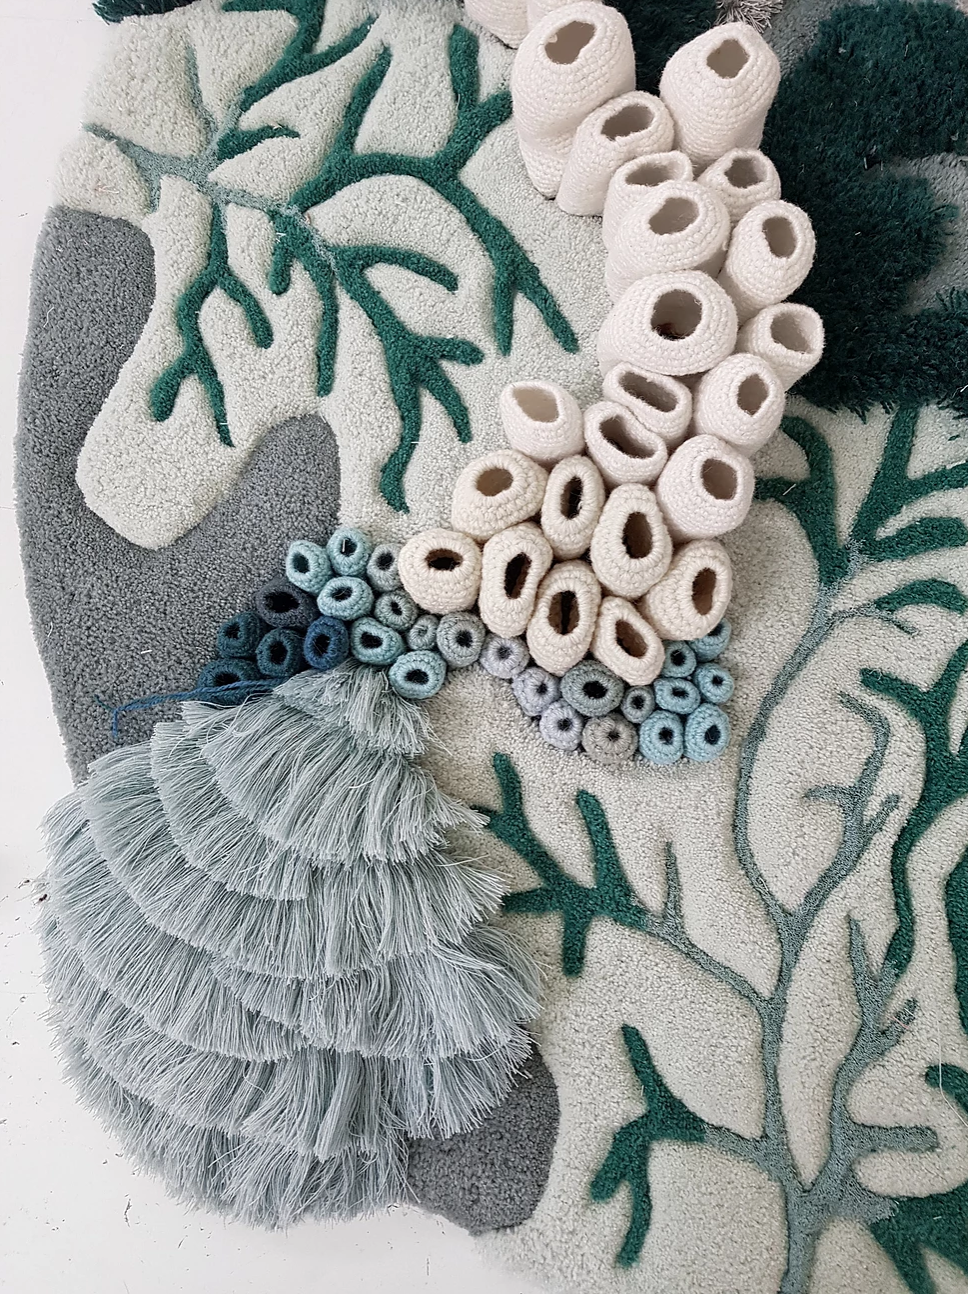 Detail of the coral reef textile art.